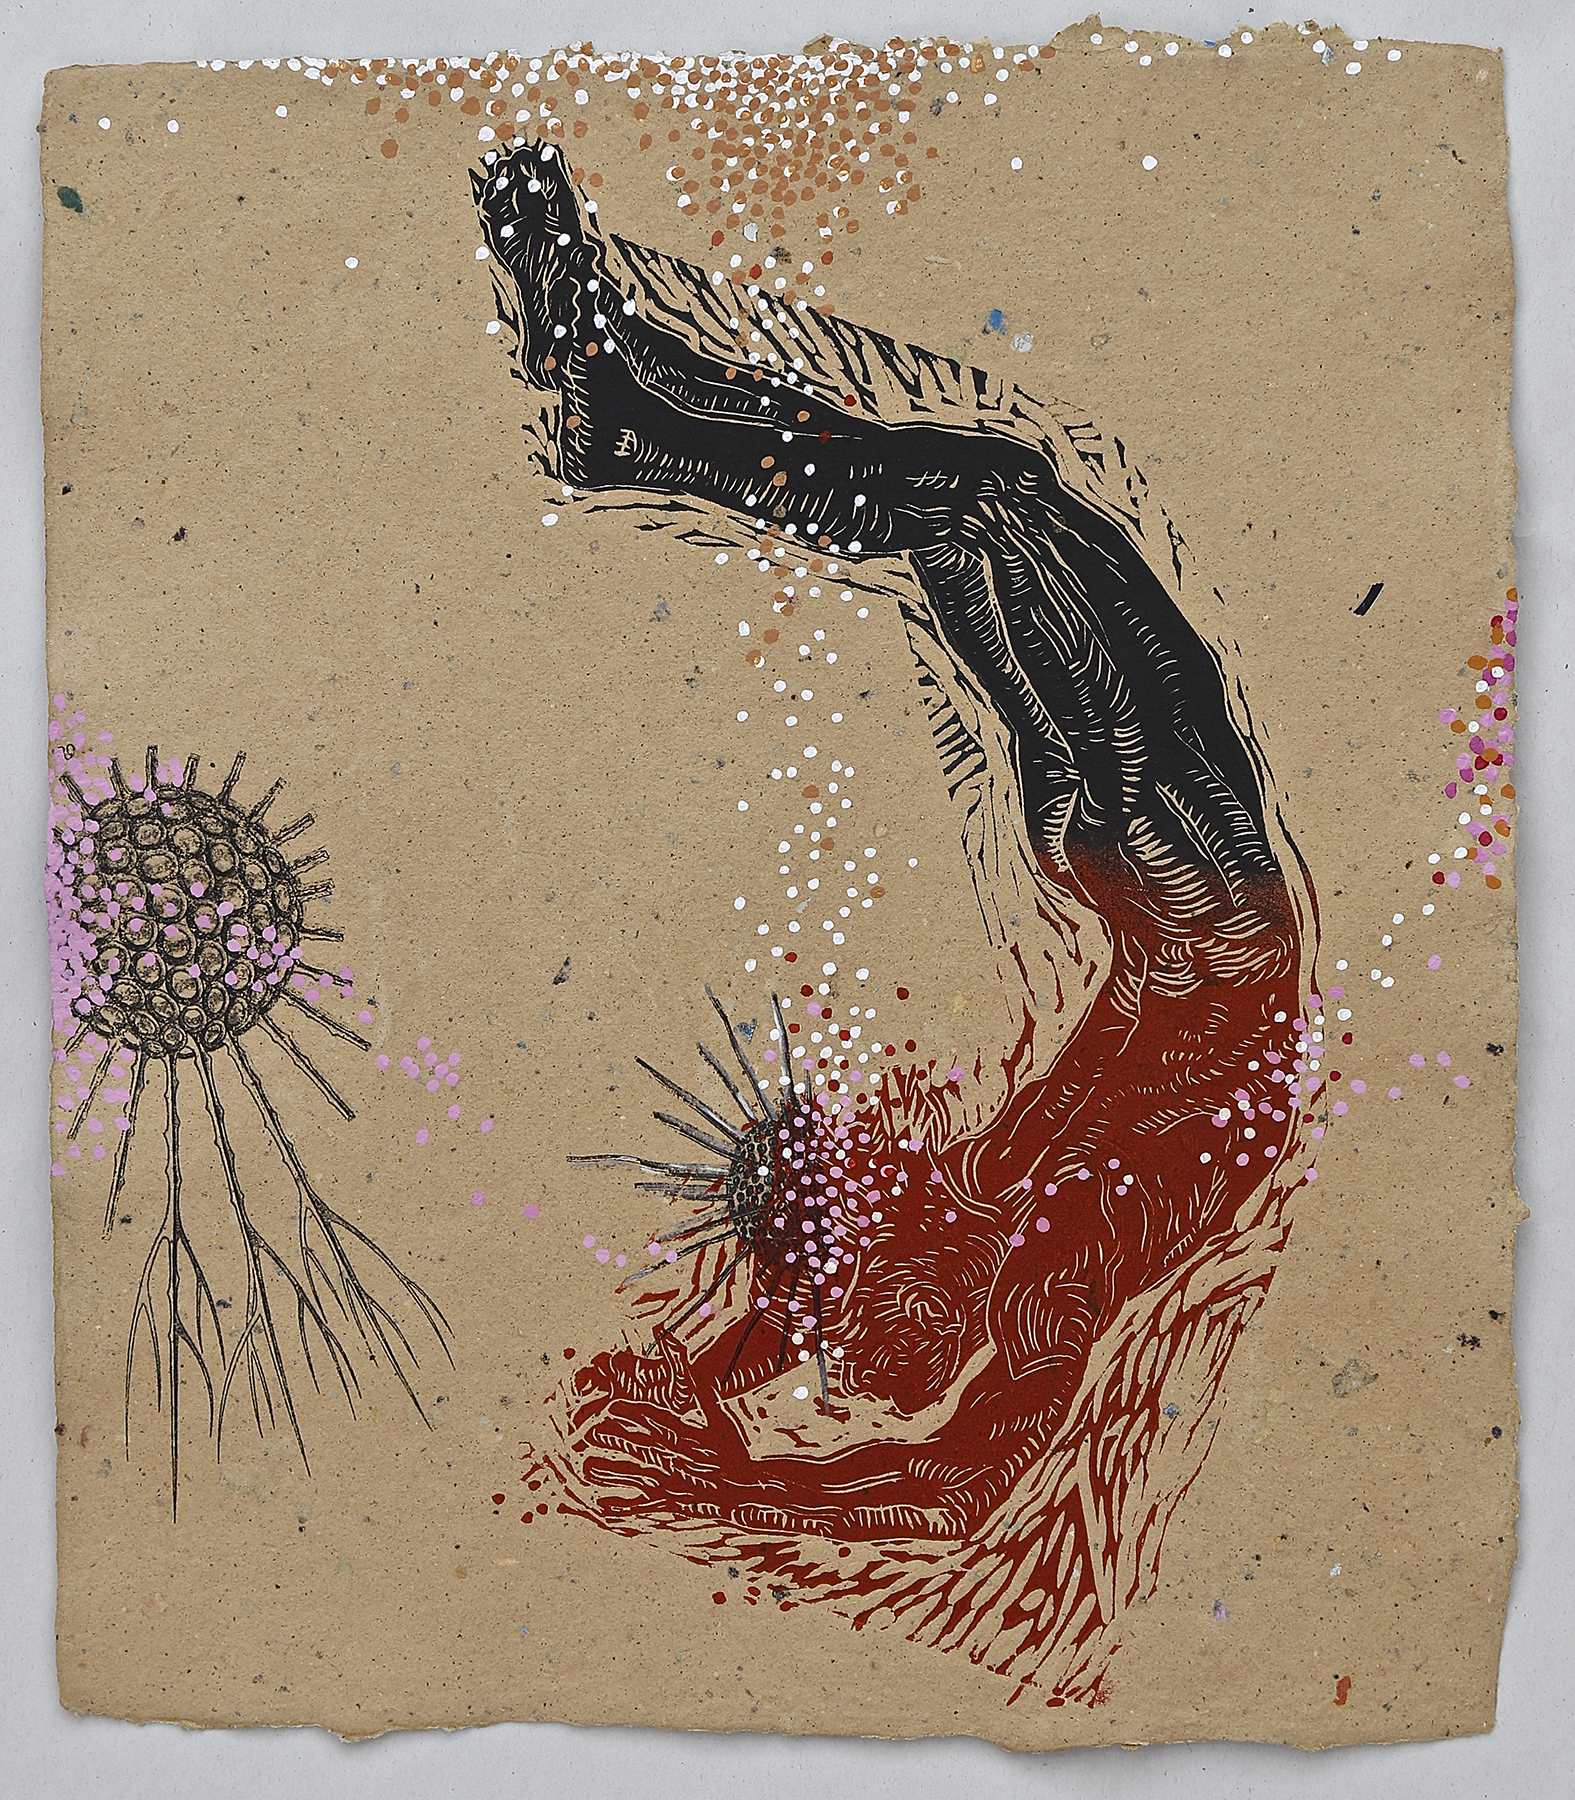 "Cladococcus Diver, 16x18"", linocut, transfer, and hand-painting on handmade paper, $350"